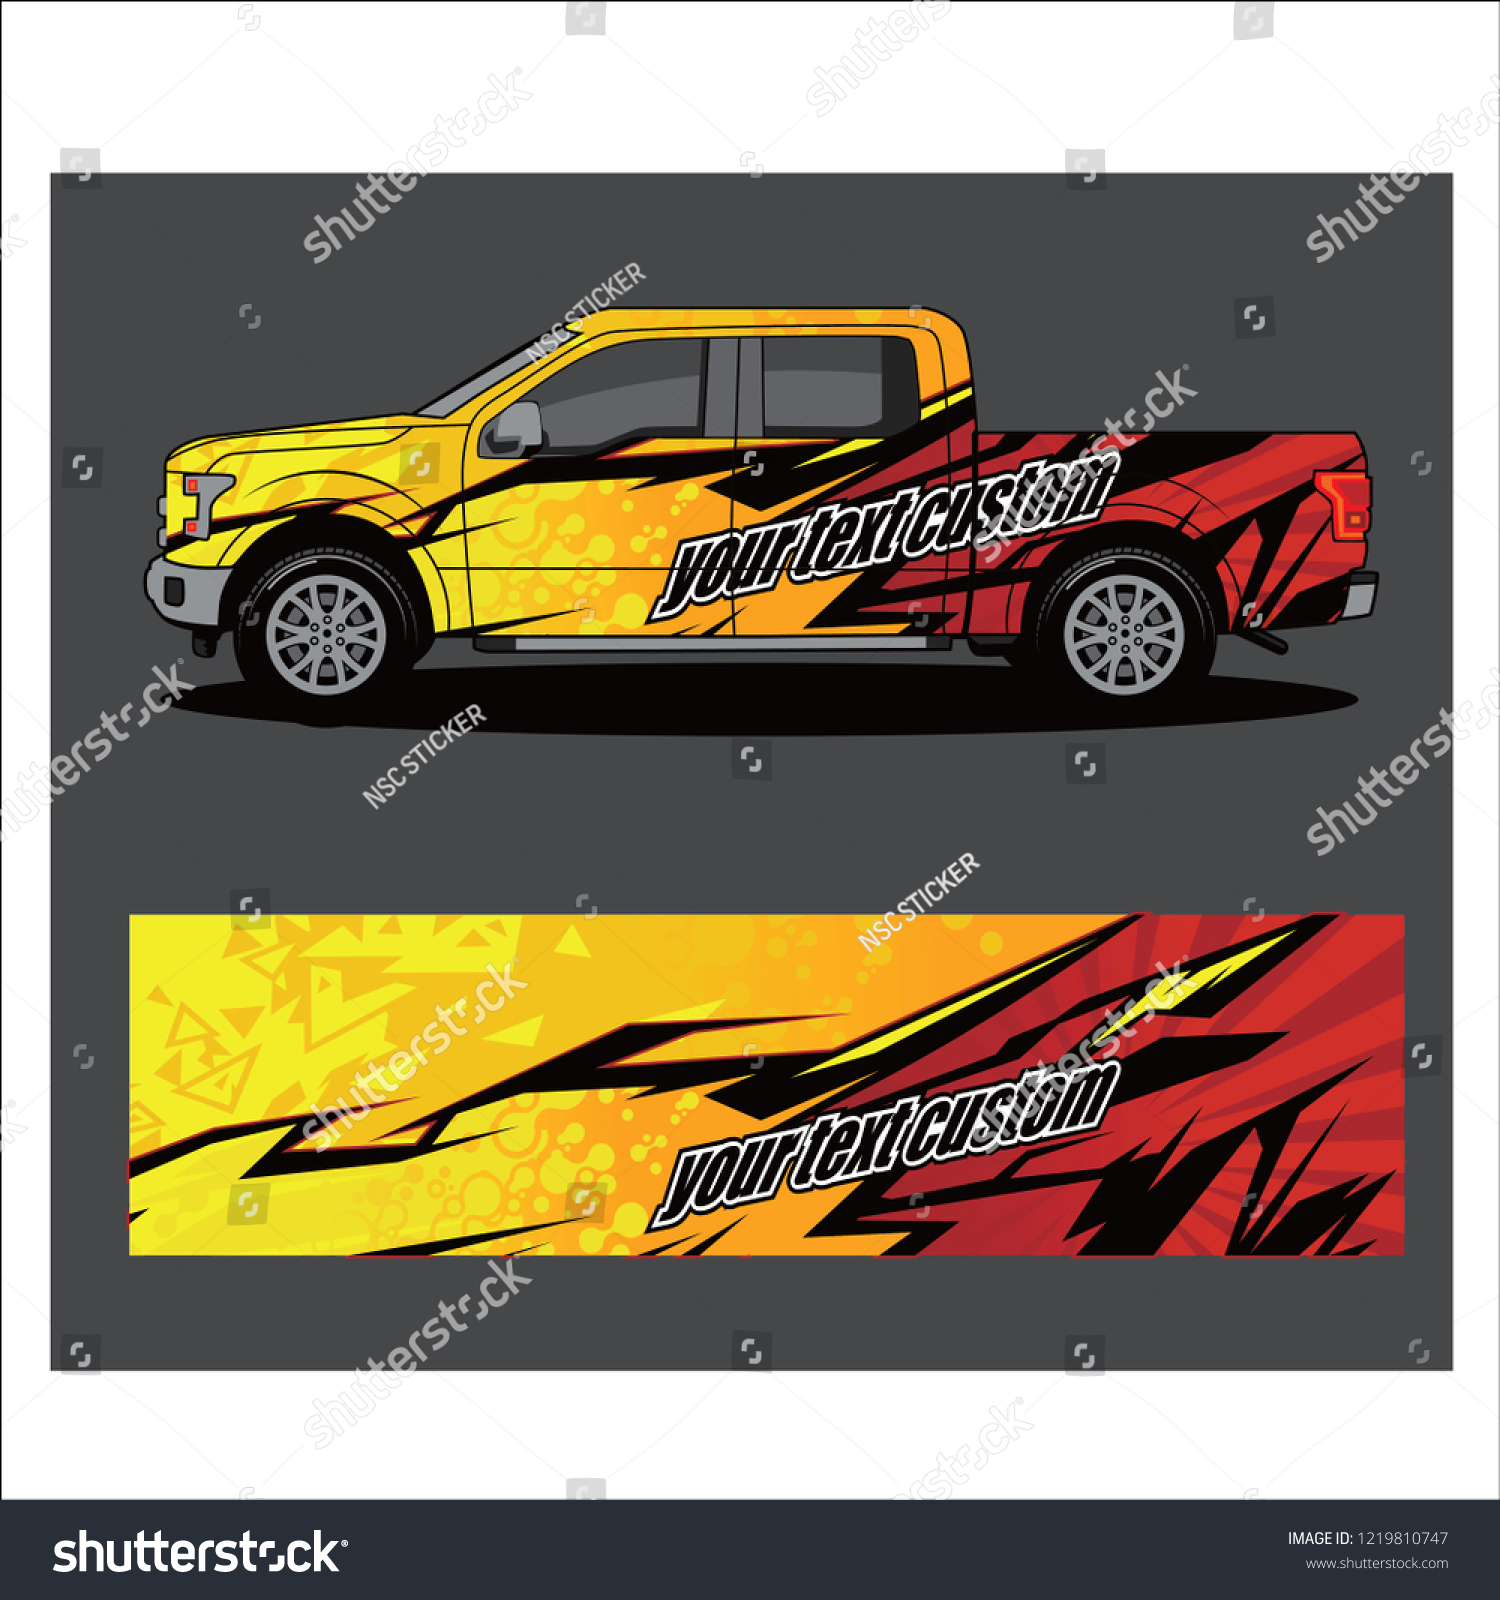 Truckcar and vehicle abstract racing graphic kit background for wrap and vinyl sticker